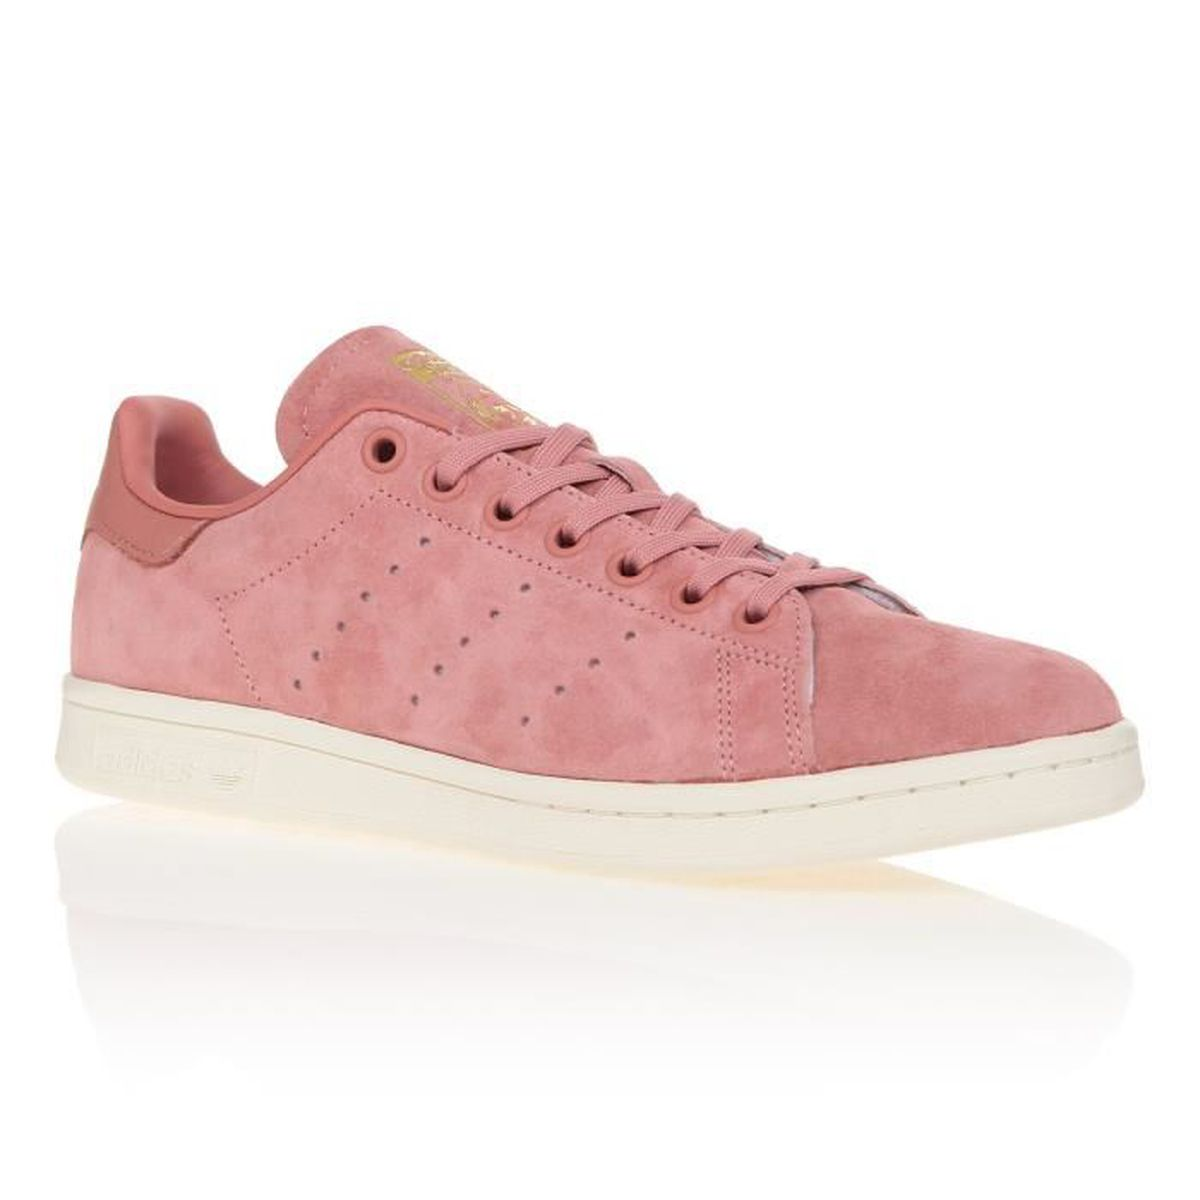 stan smith marron femme